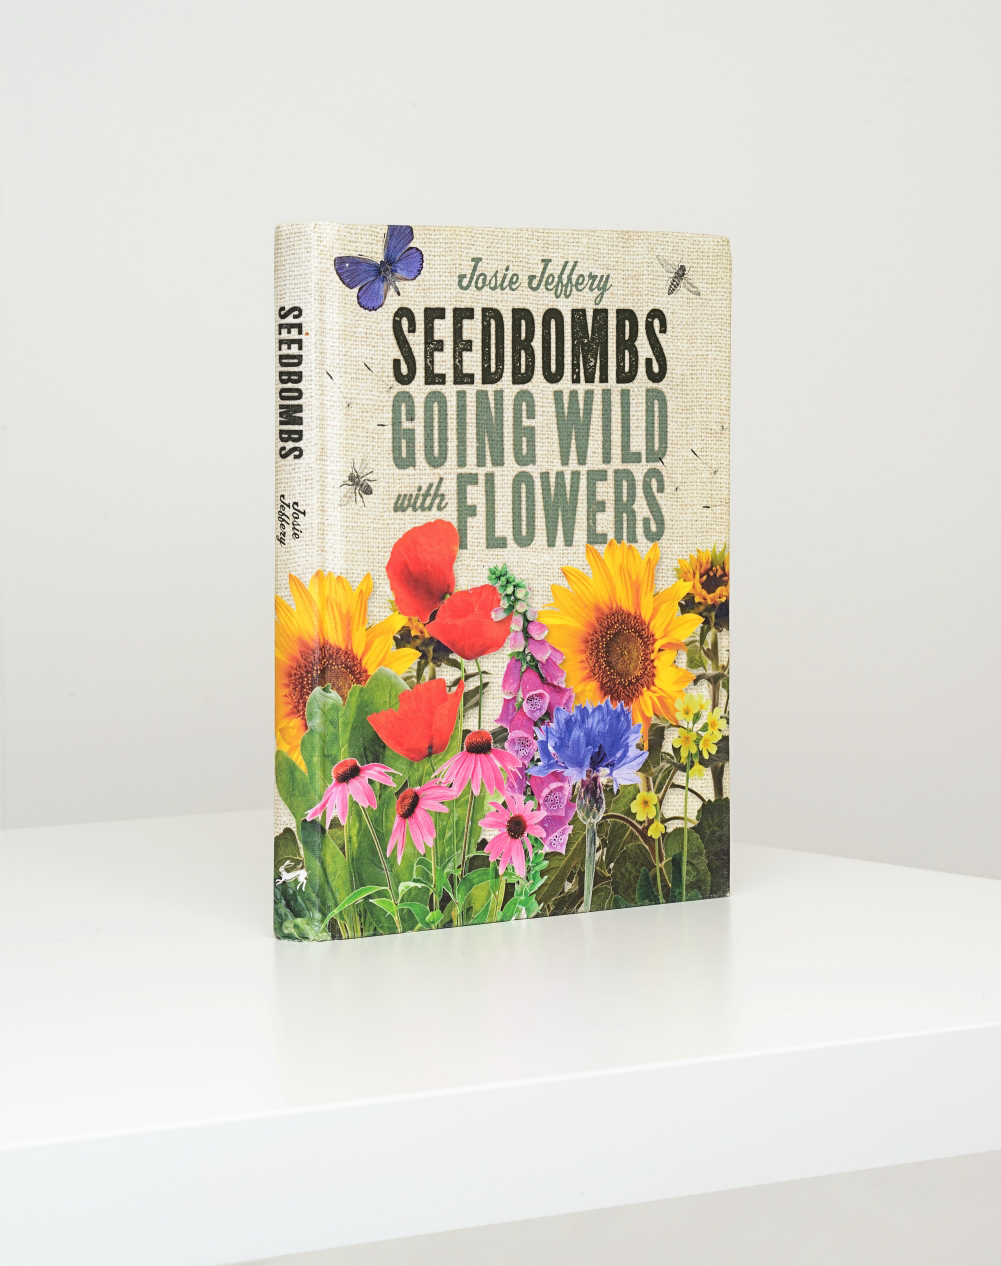 Seedbombs Going Wild with Flowers.  Commissioned by Ivy Press